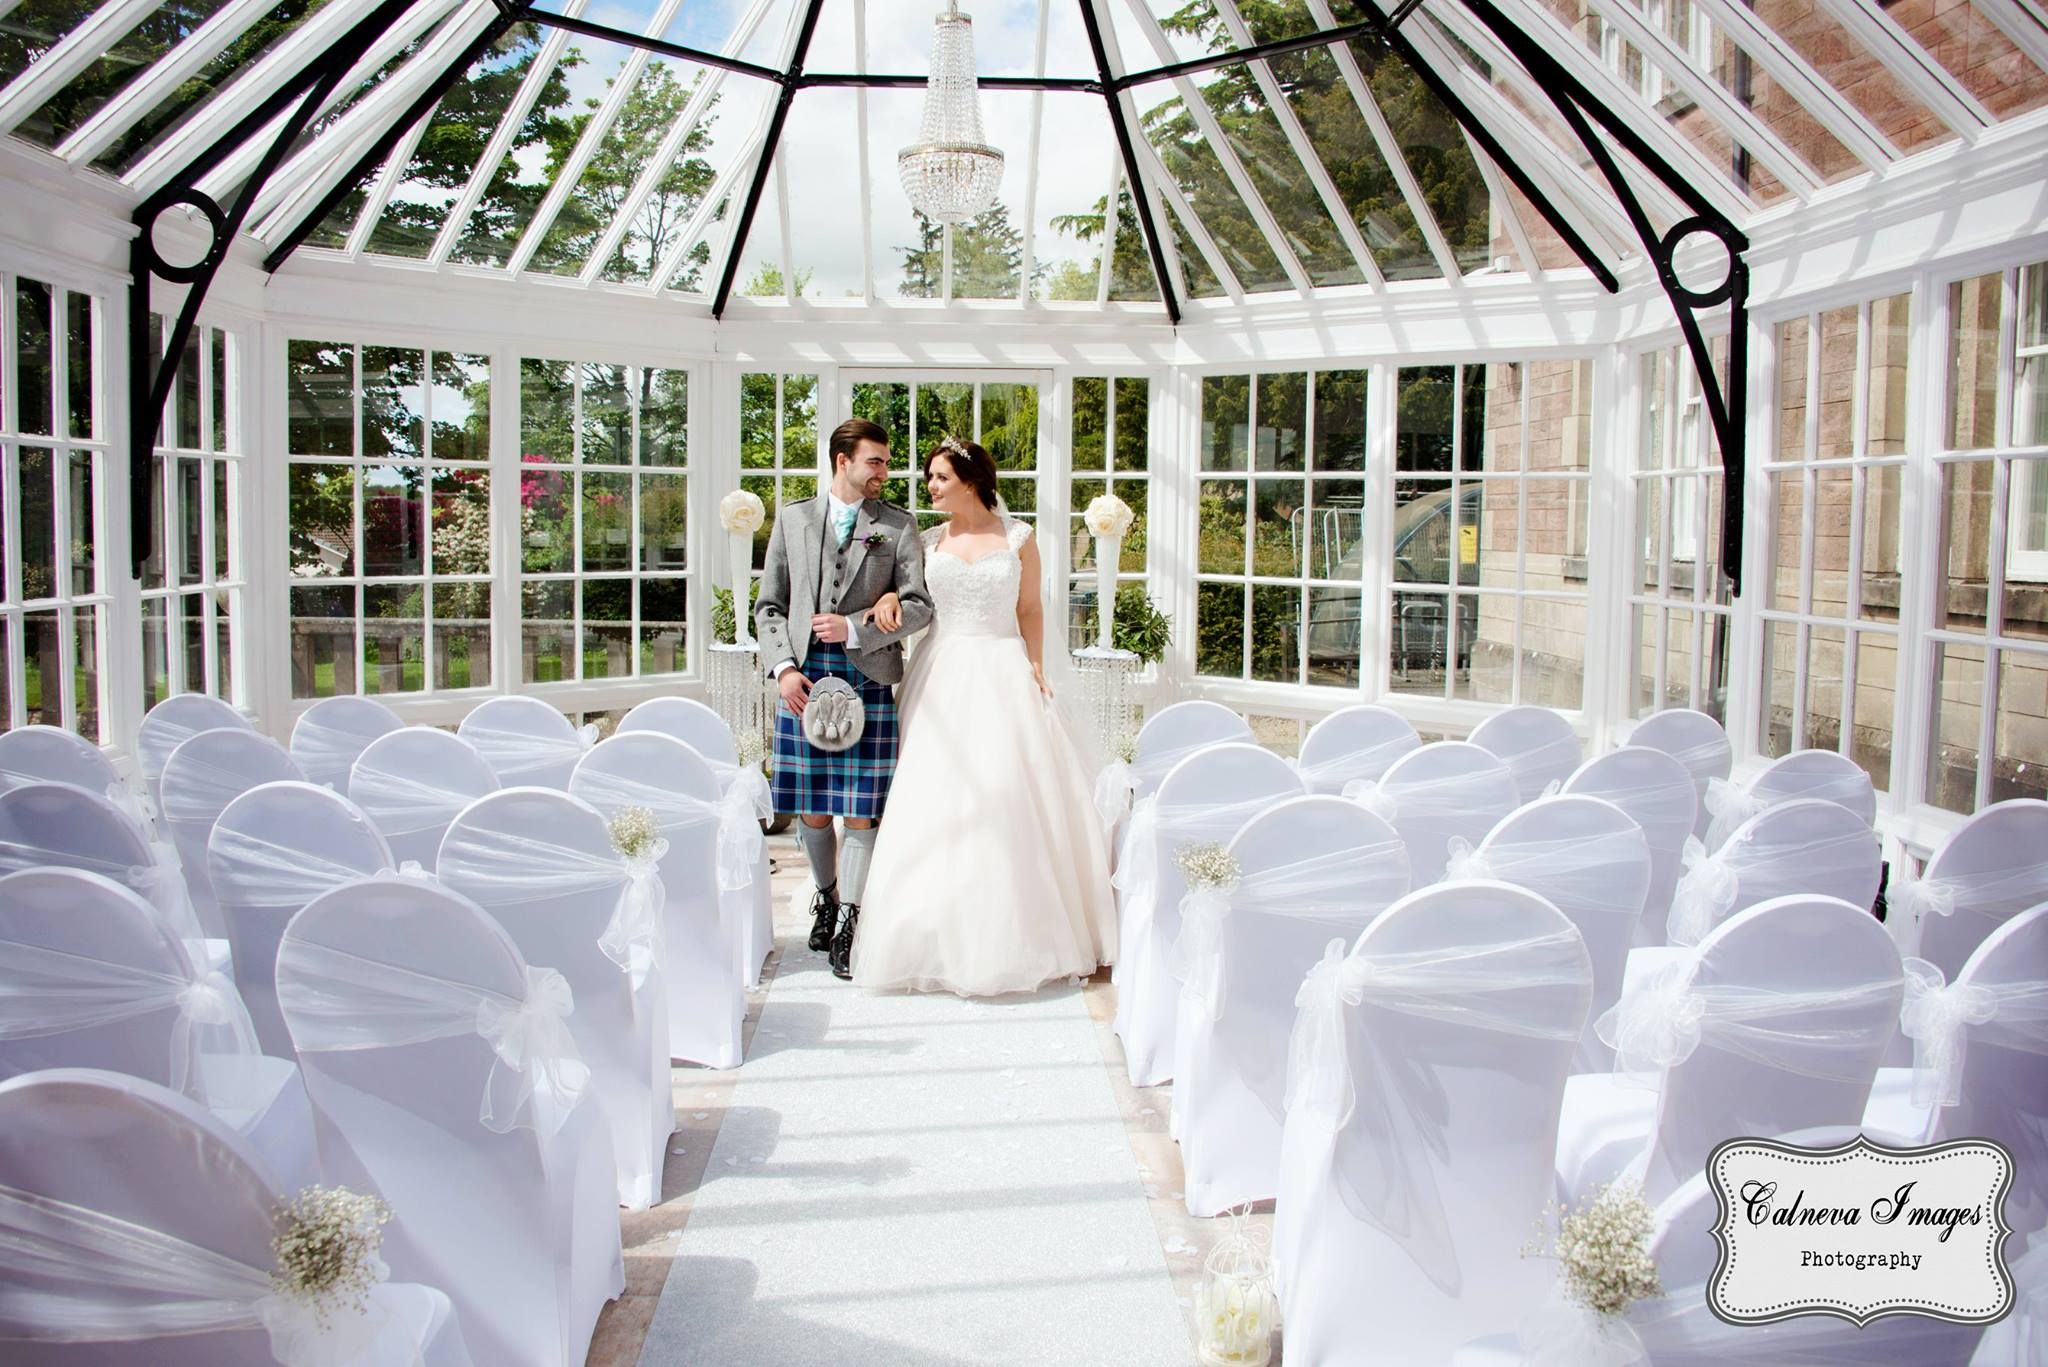 Inglewood House And Spa Conservatory Ceremony Wedding Venue In Central Scotland Clackmannanshire